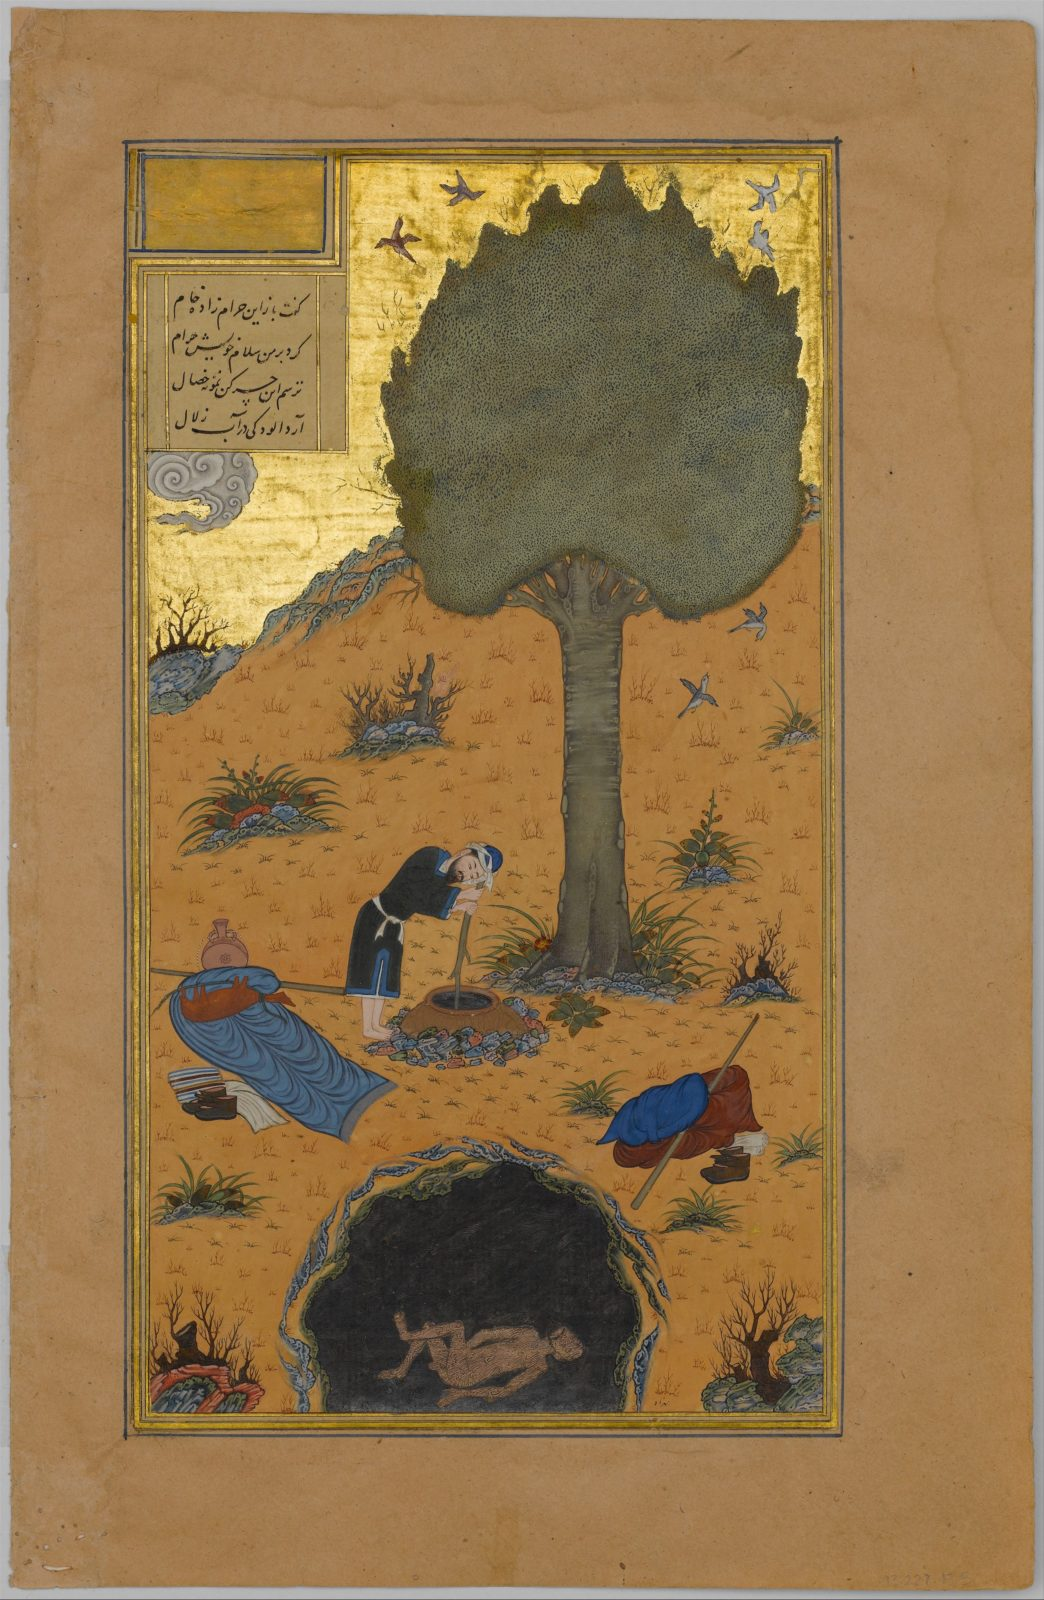 """""""How a Braggart was Drowned in a Well"""", Folio 33v from a Haft Paikar (Seven Portraits) of the Khamsa (Quintet) of Nizami"""